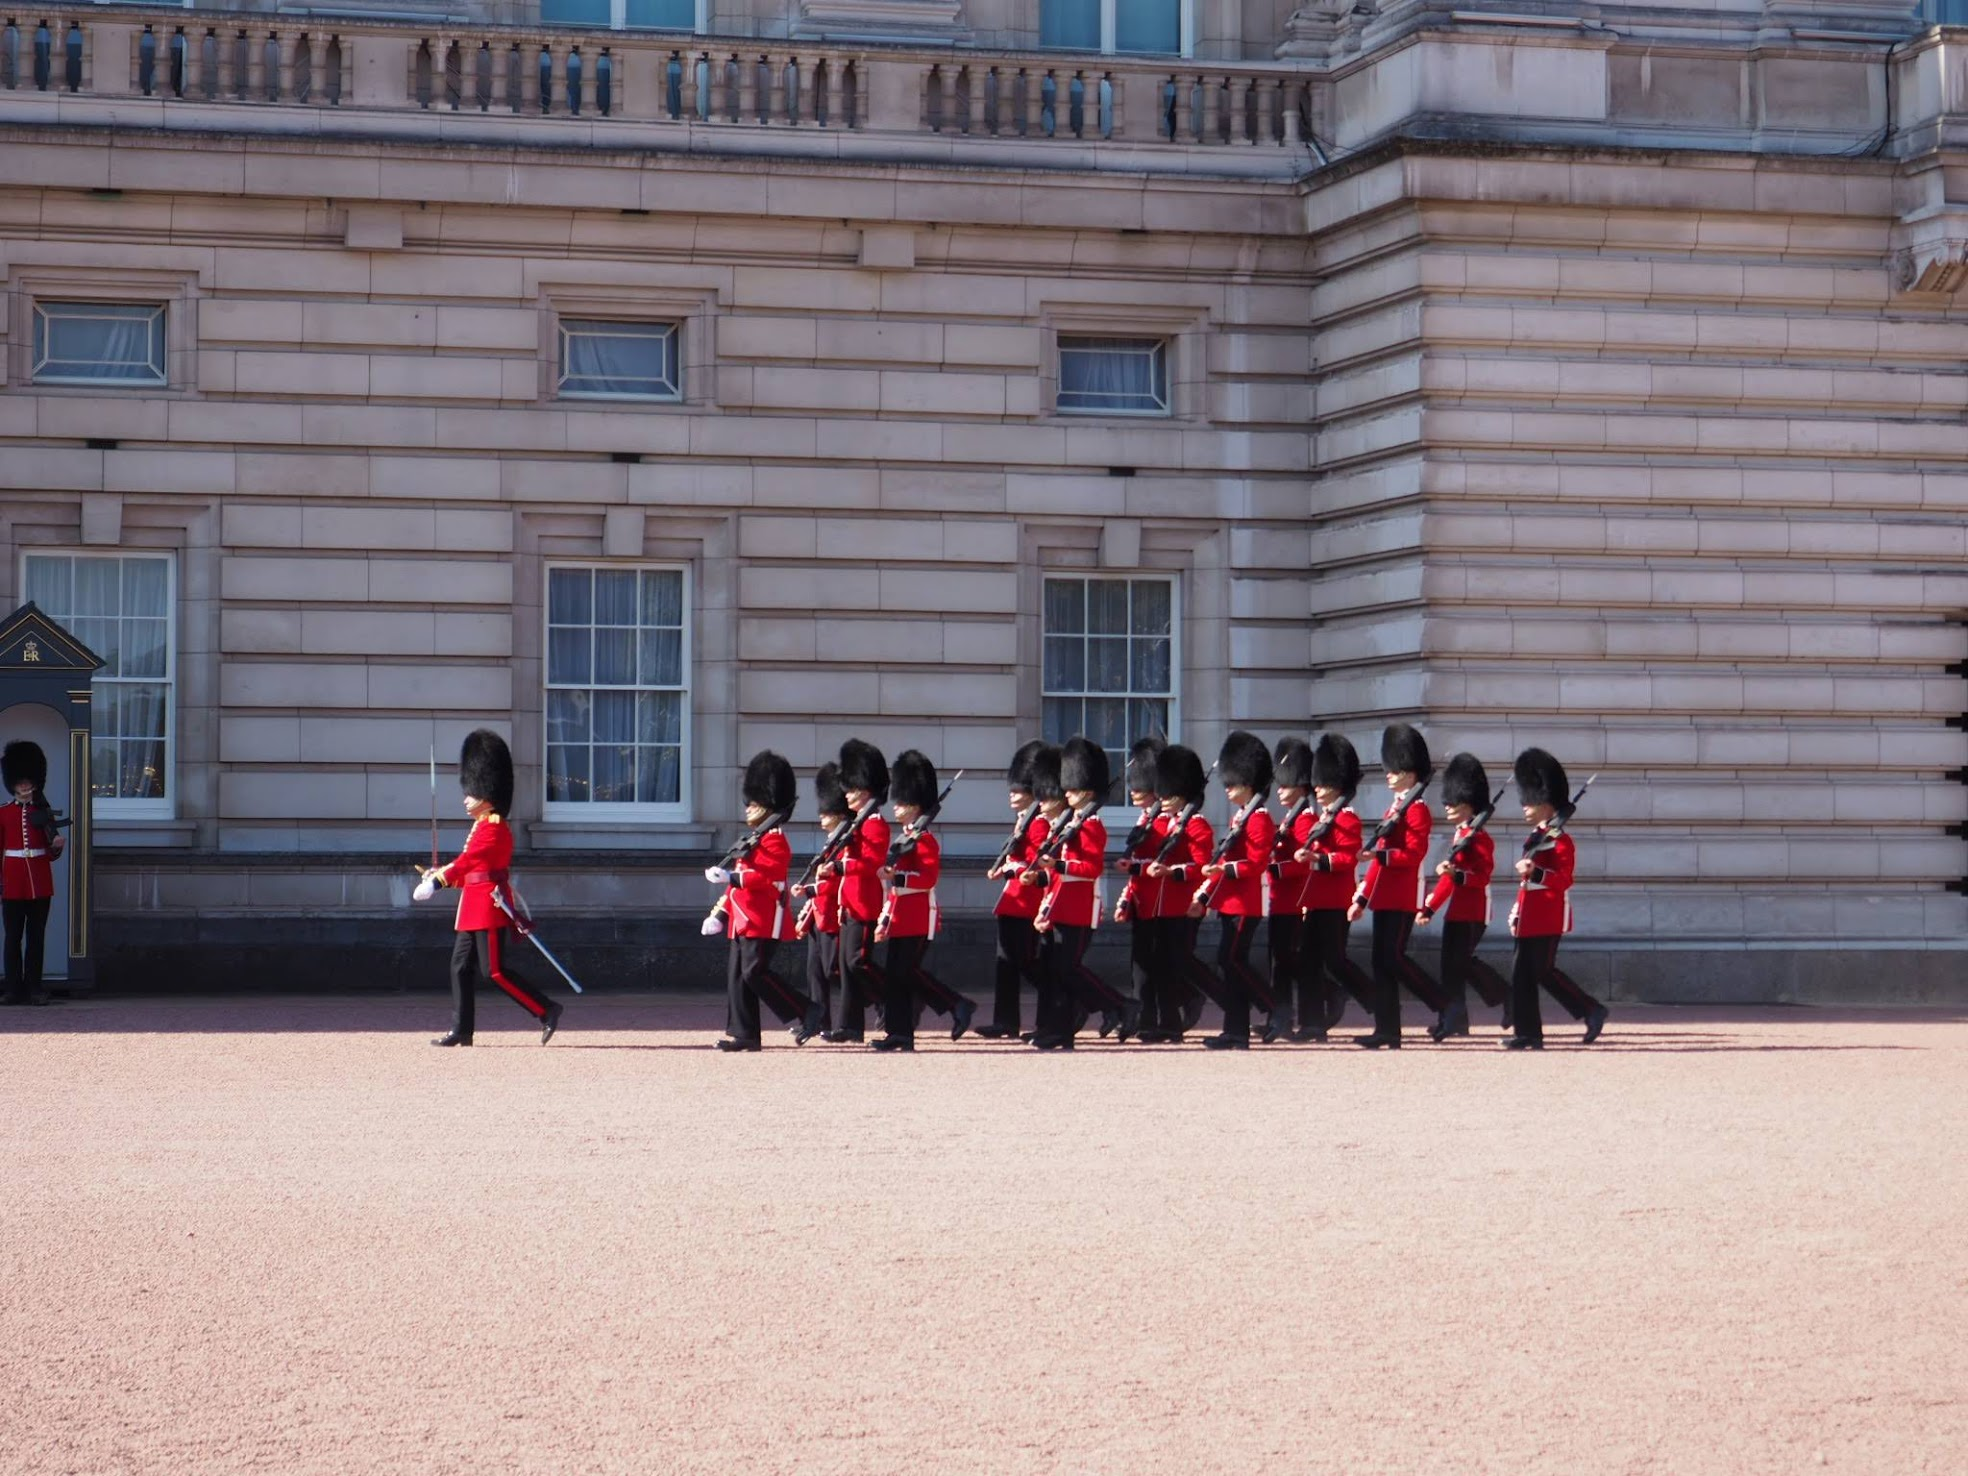 Buckingham Palace Guards Marching